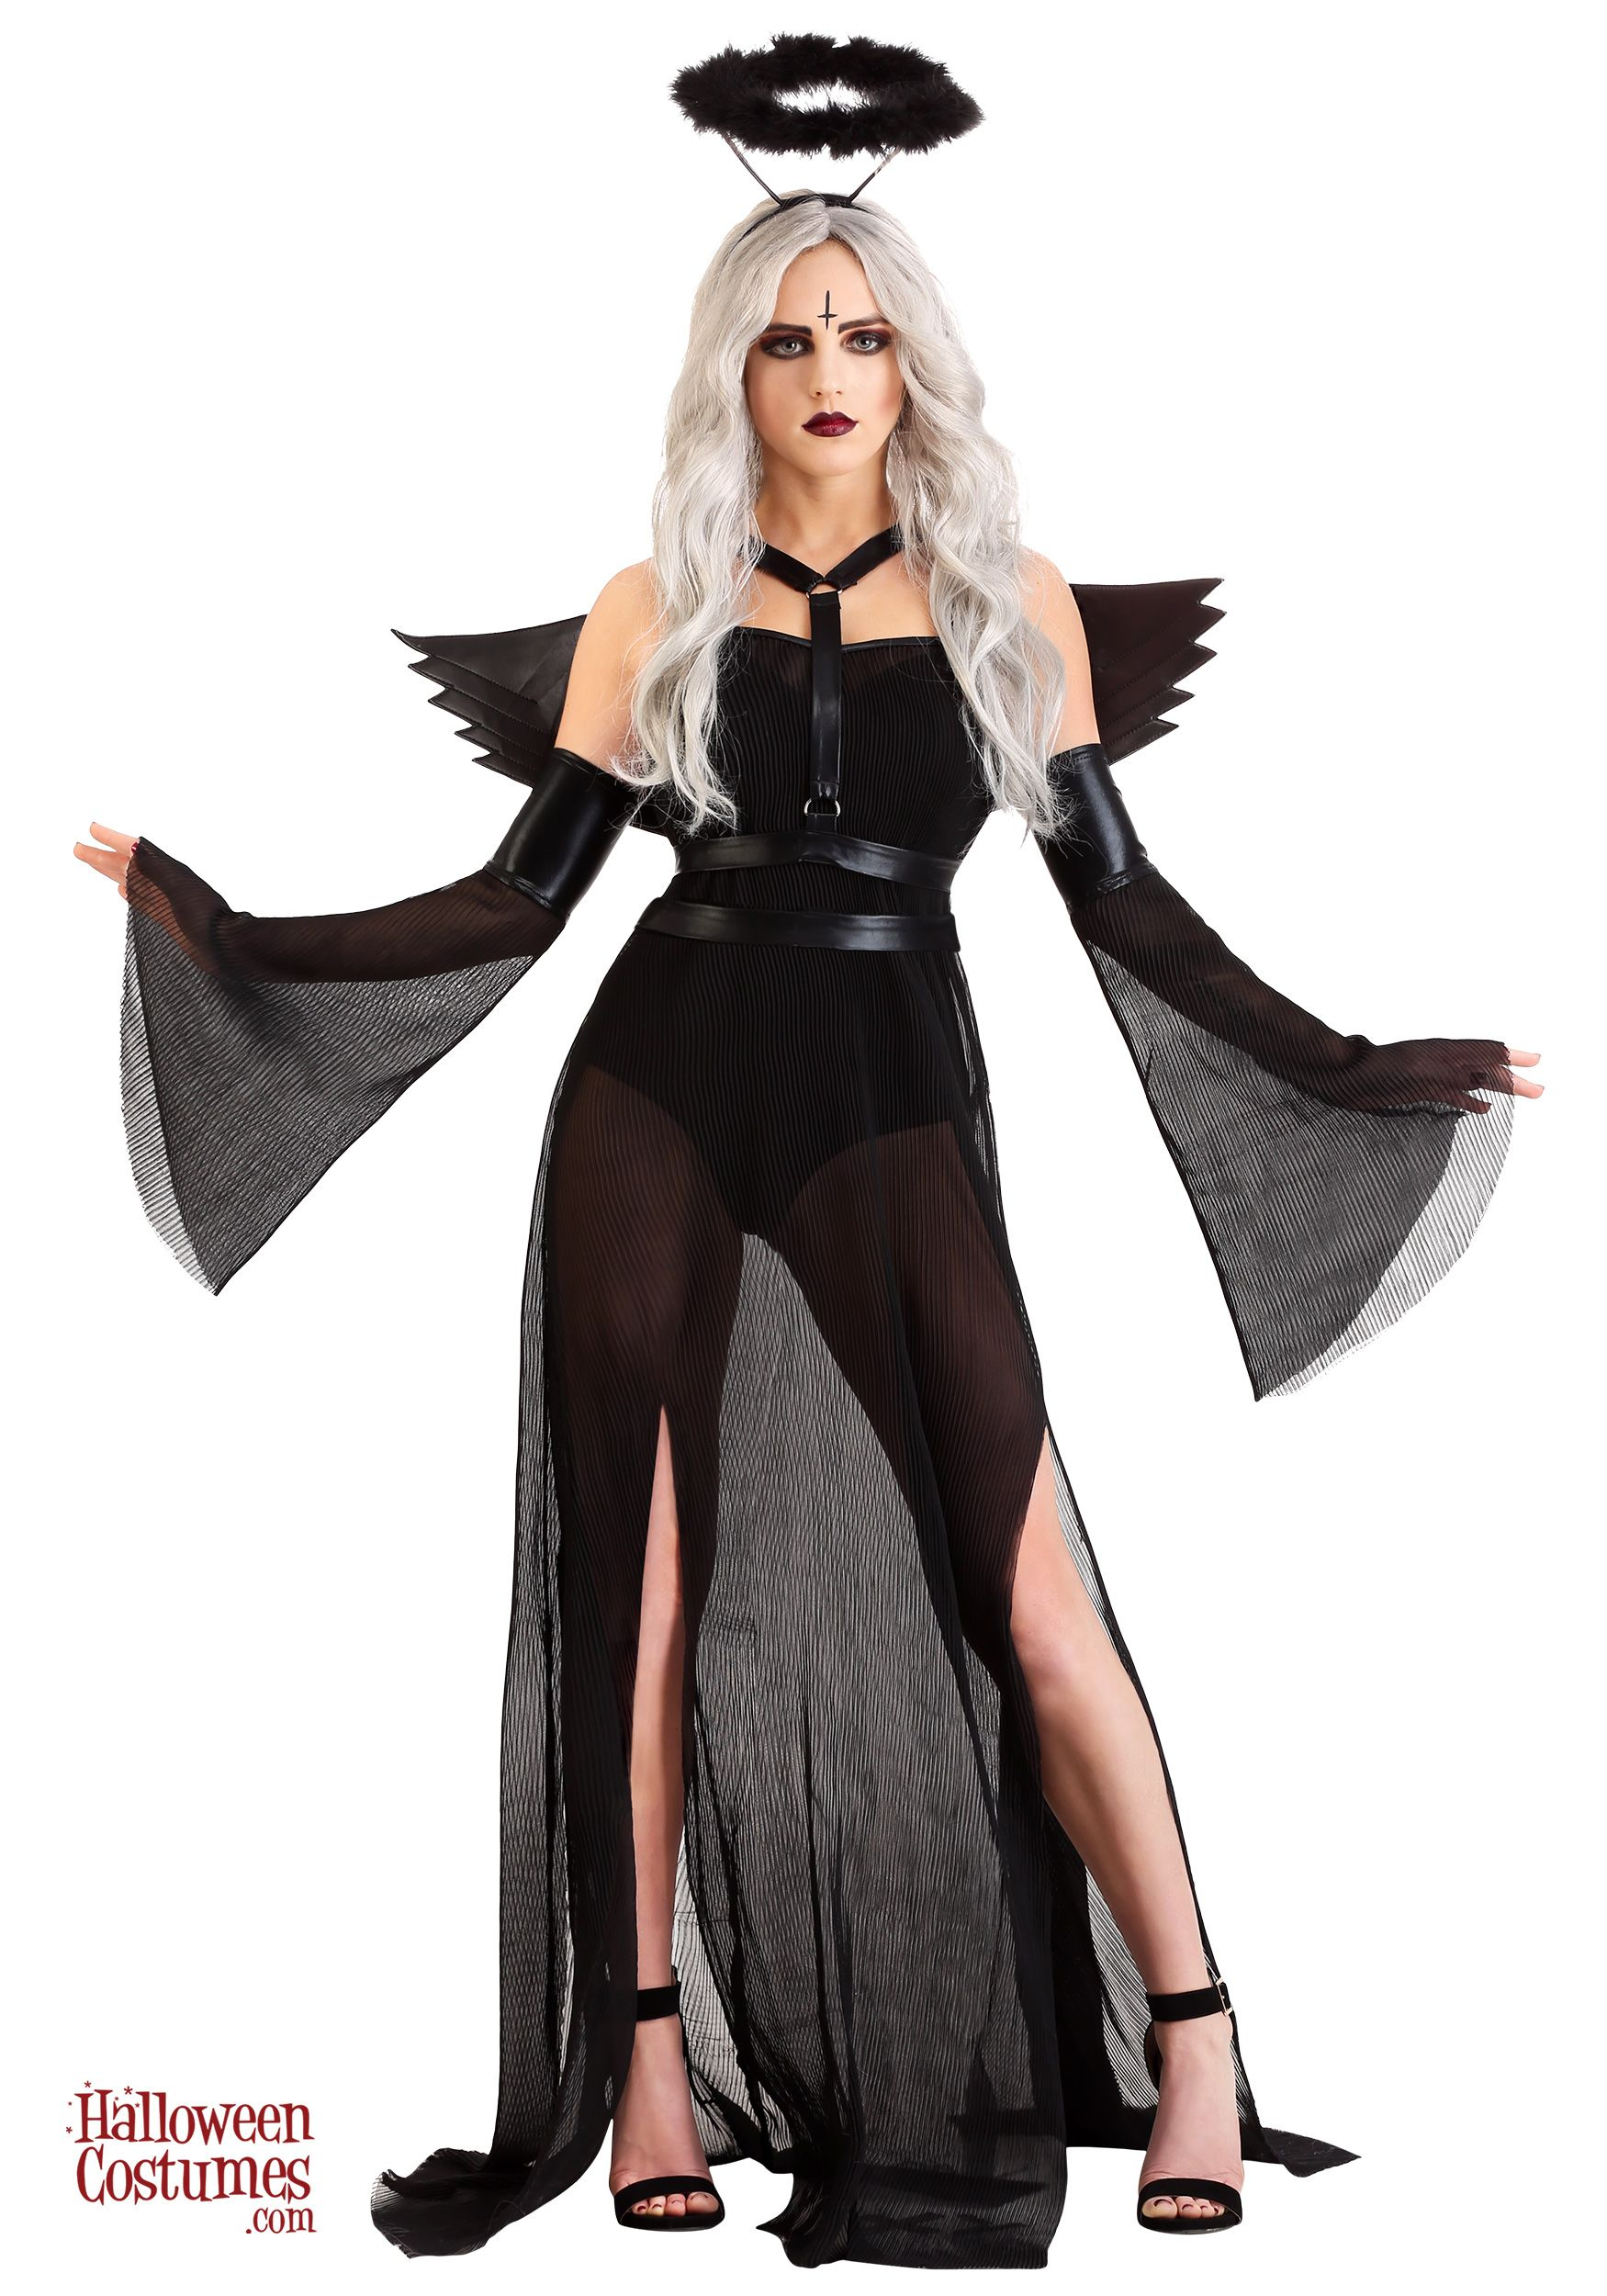 Fallen Angel Costume for Women Angel costume women